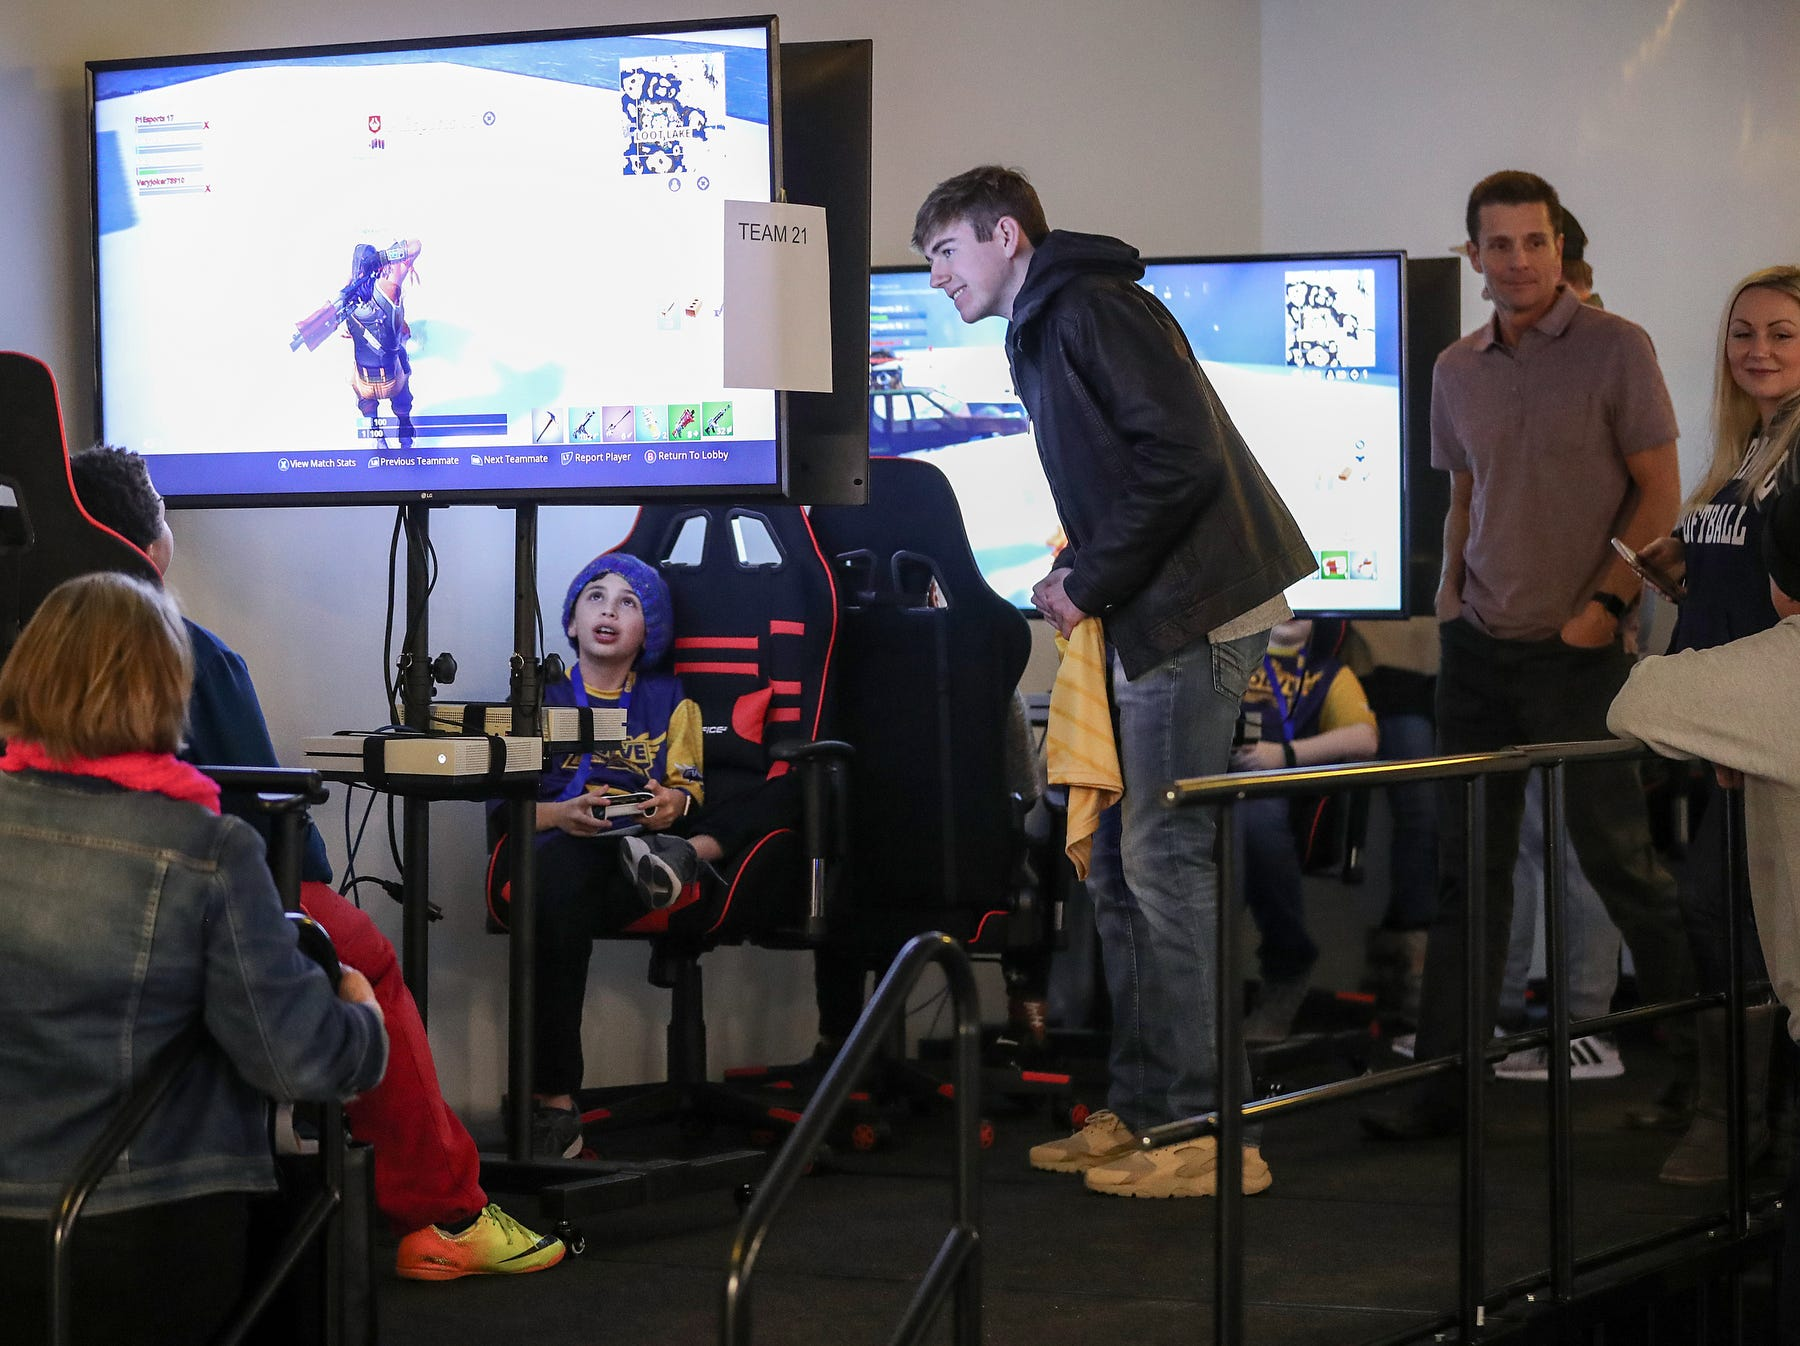 Player One arena, where practices for Evolve Youth Esports will take place in Carmel, Ind., Thursday, Jan. 24, 2019. Scott Wise, original founder of Scotty's Brewhouse, has partnered with Player One Esports for his next venture, a video game sports league that has attracted around 200 kids so far.